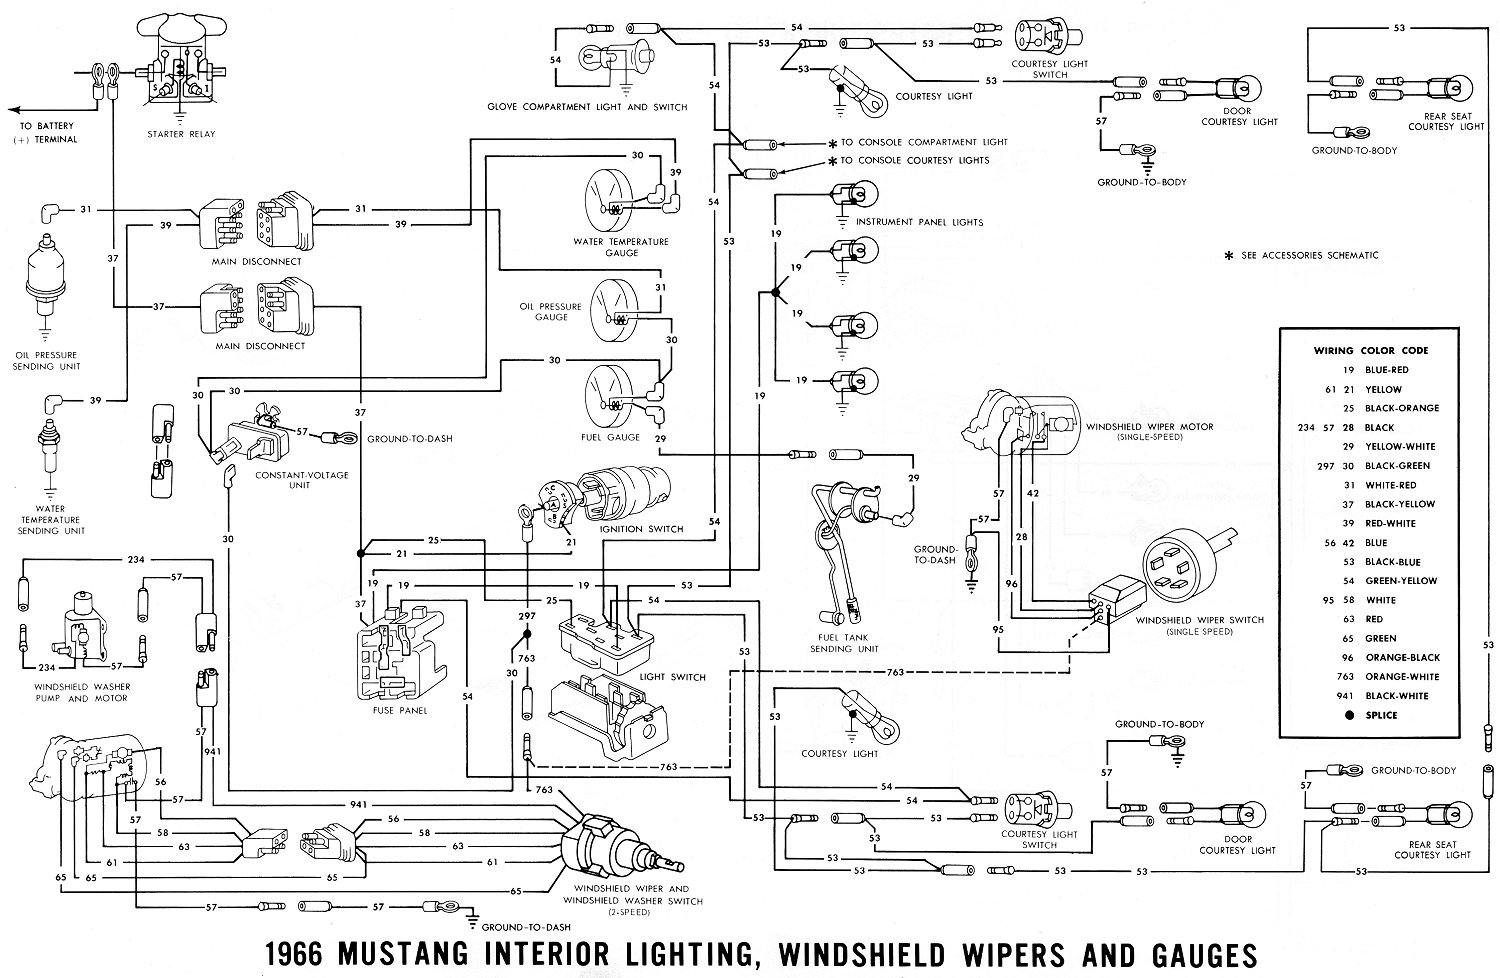 66inter1 1966 mustang wiring diagrams average joe restoration 68 mustang wiring harness at reclaimingppi.co